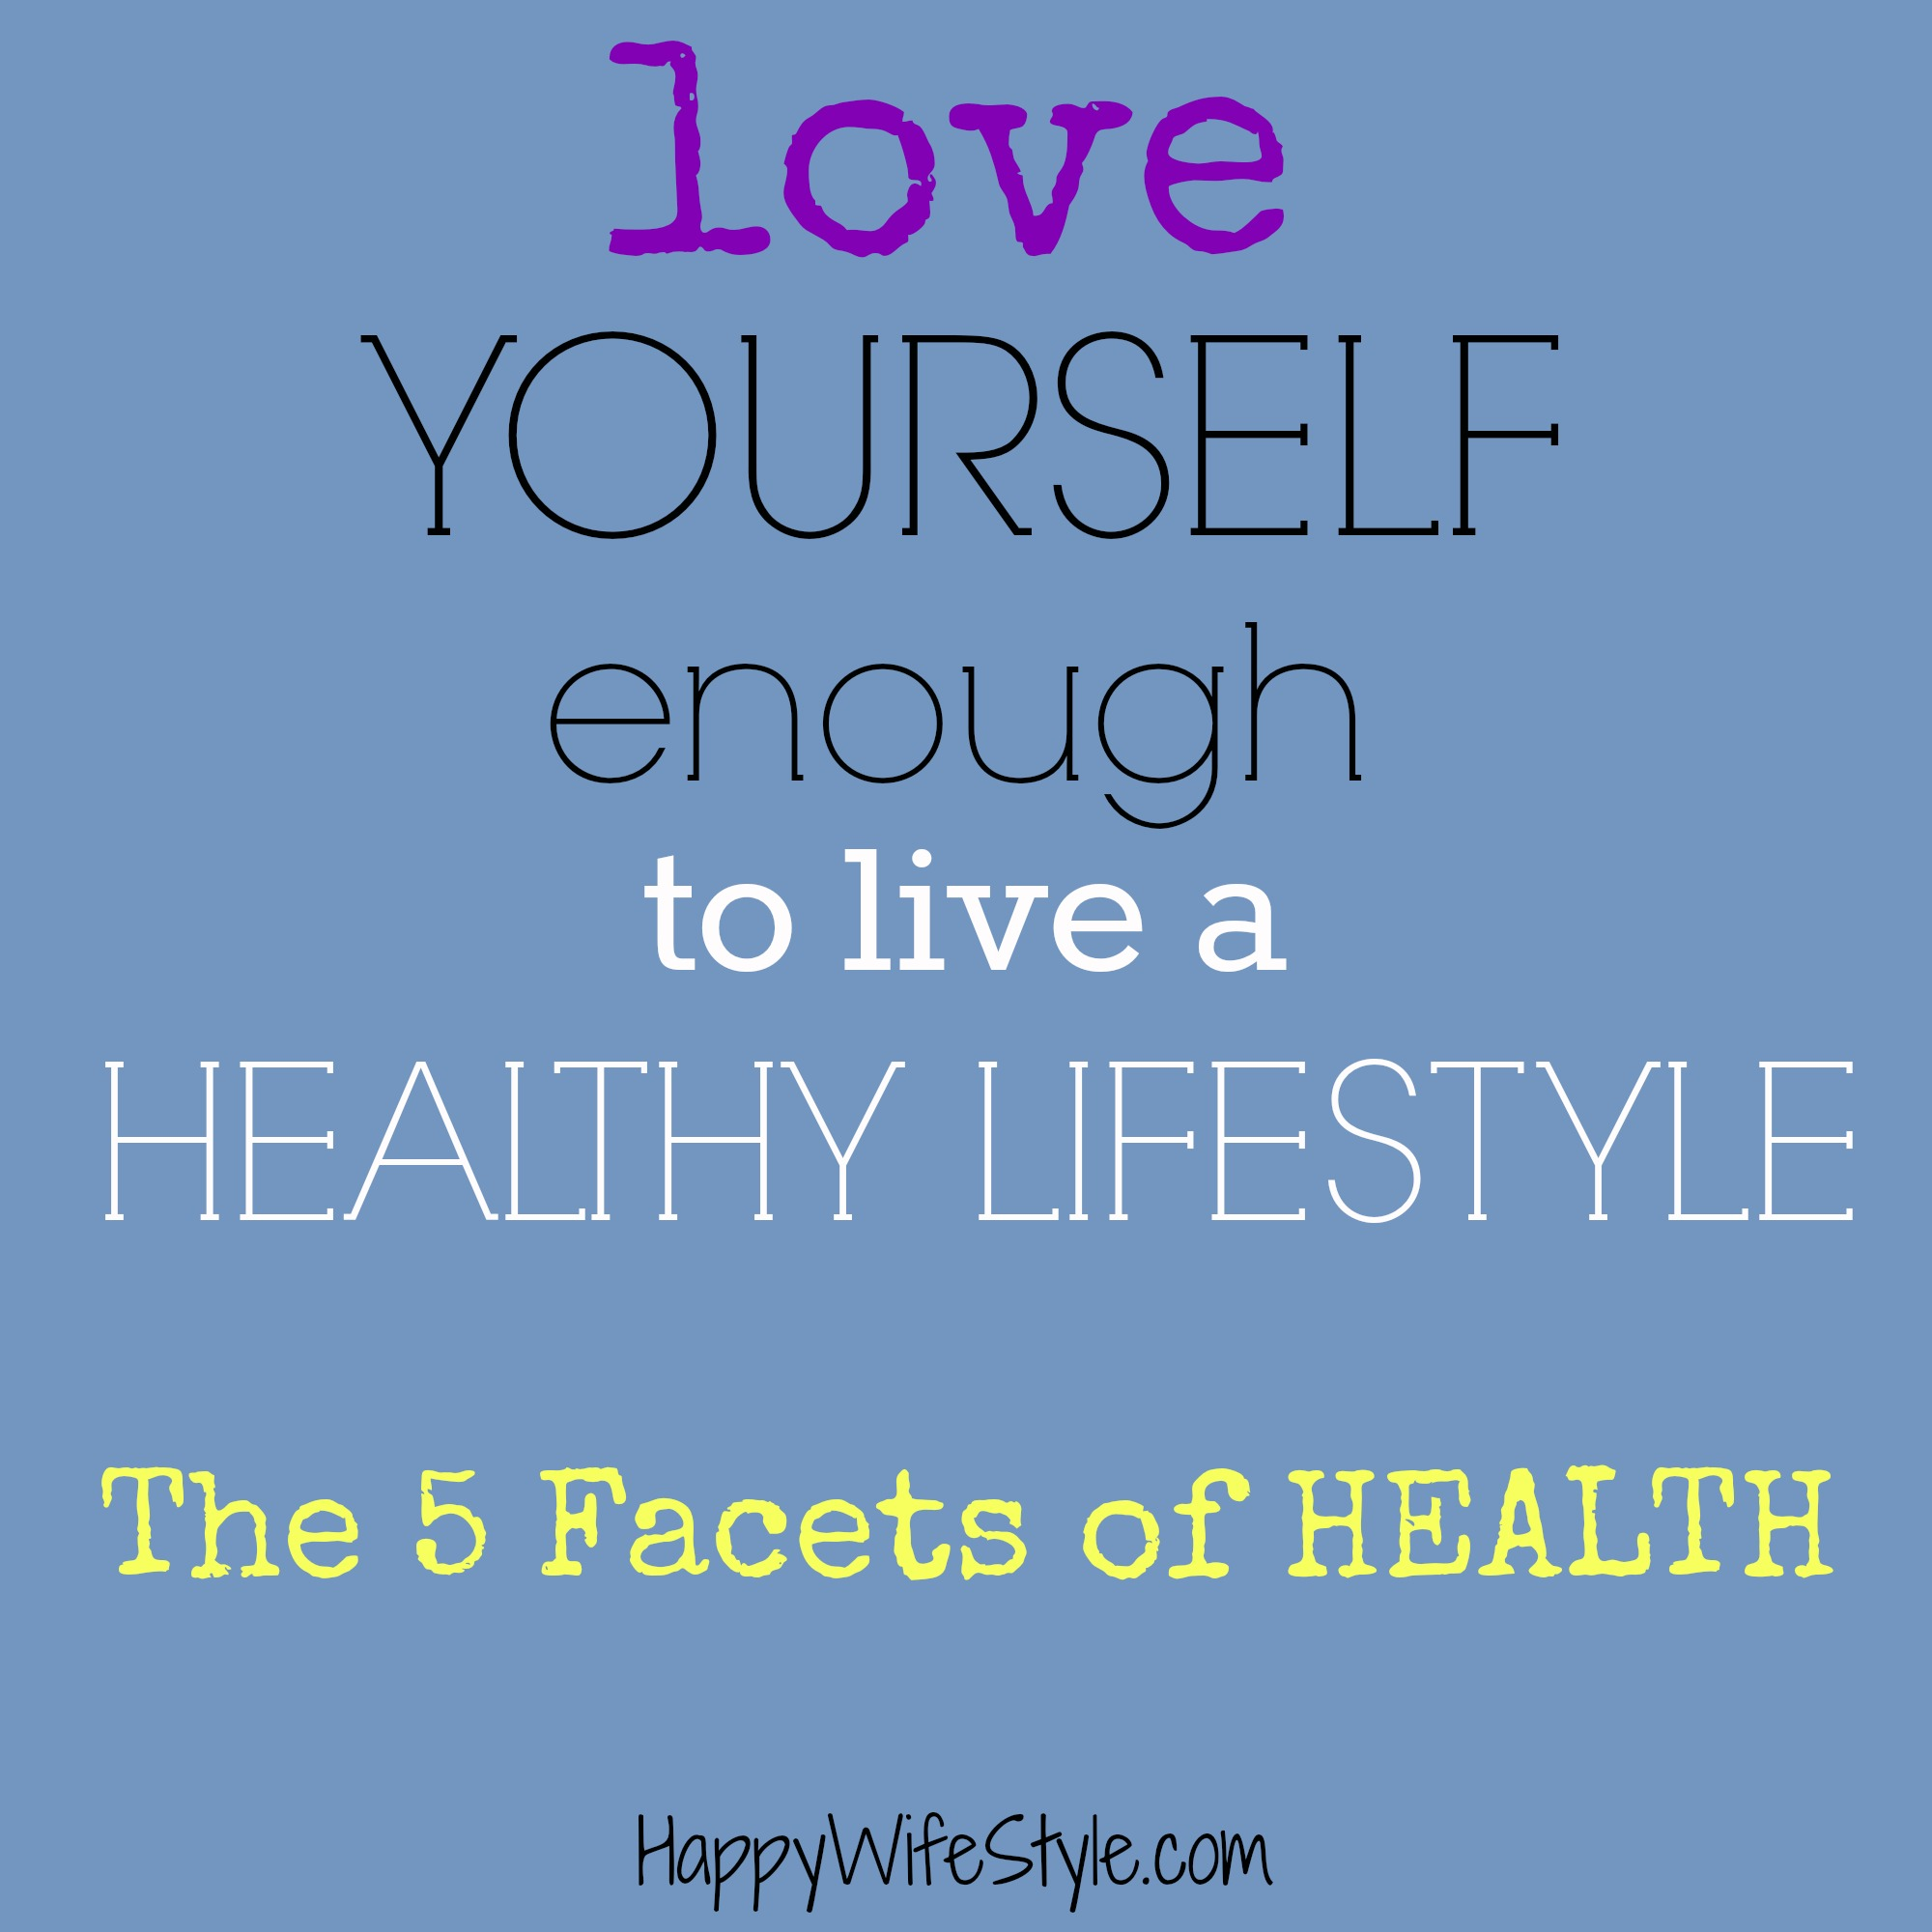 the-5-facets-of-health